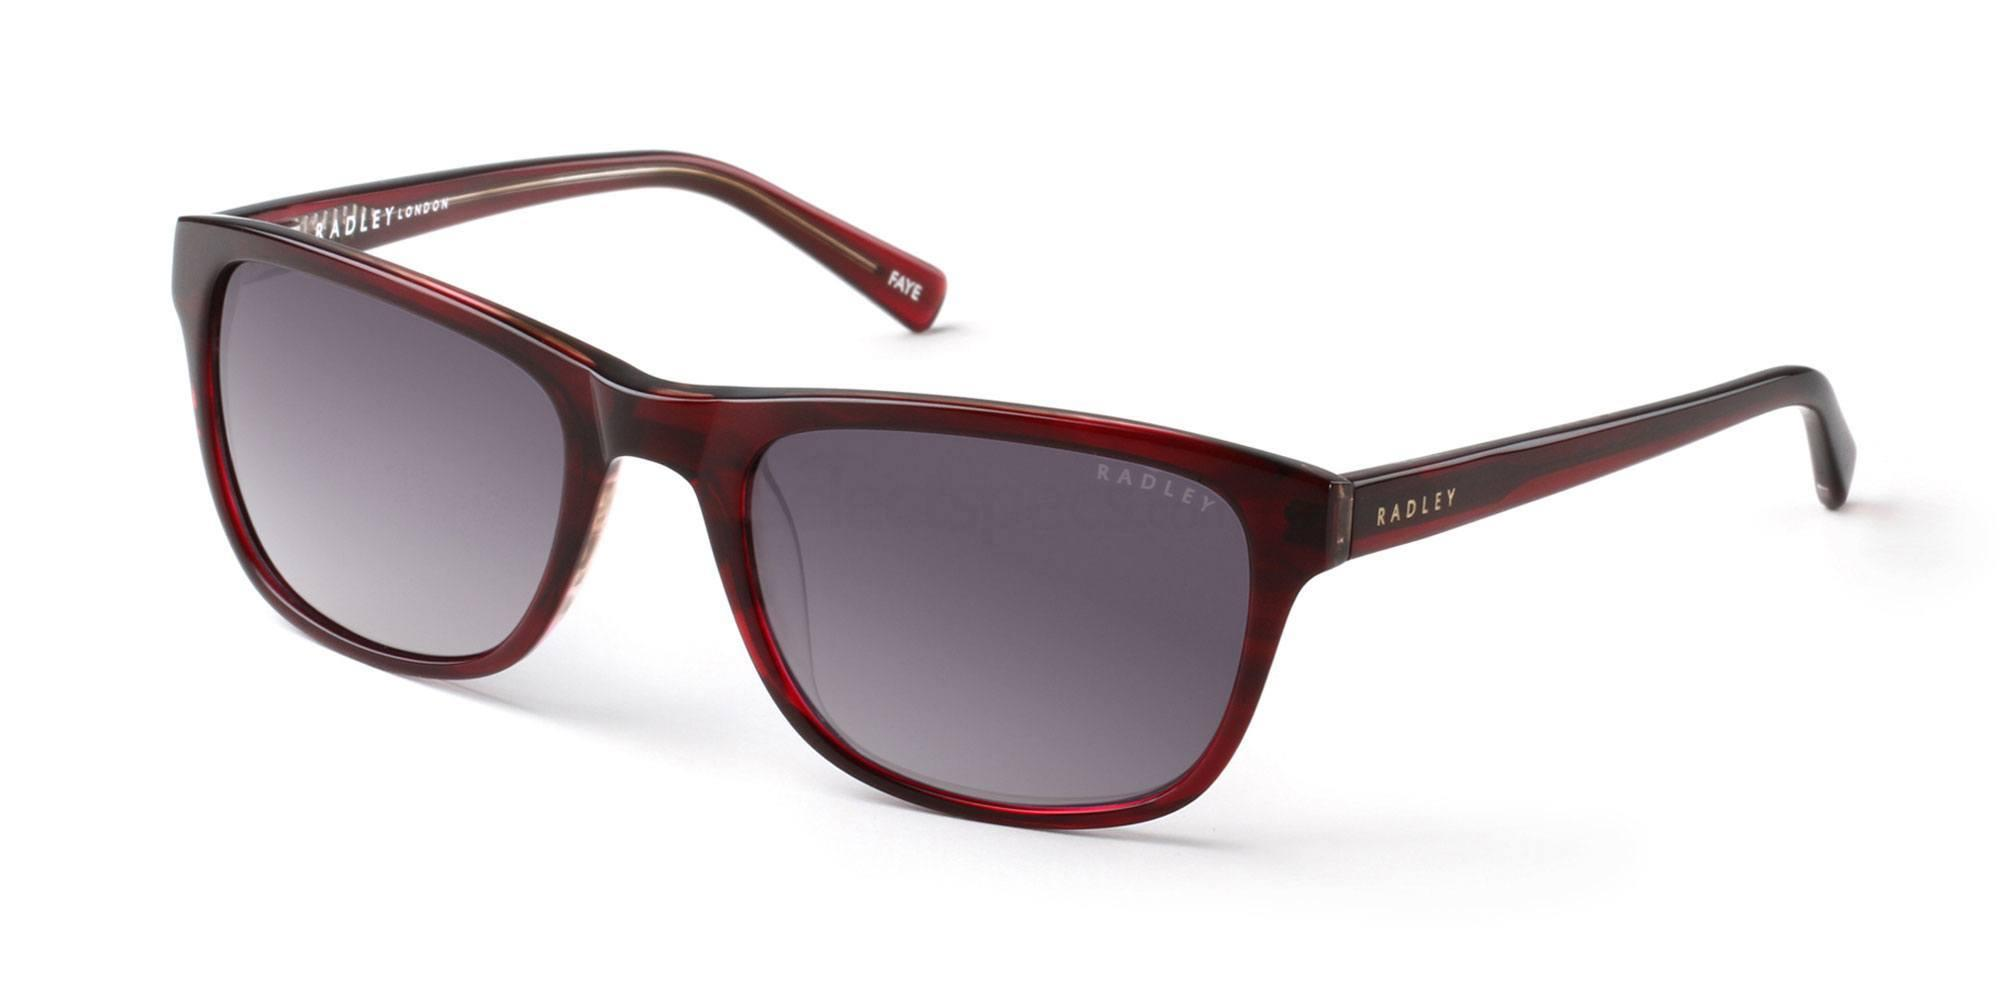 162 RDS-FAYE-RX Sunglasses, Radley London